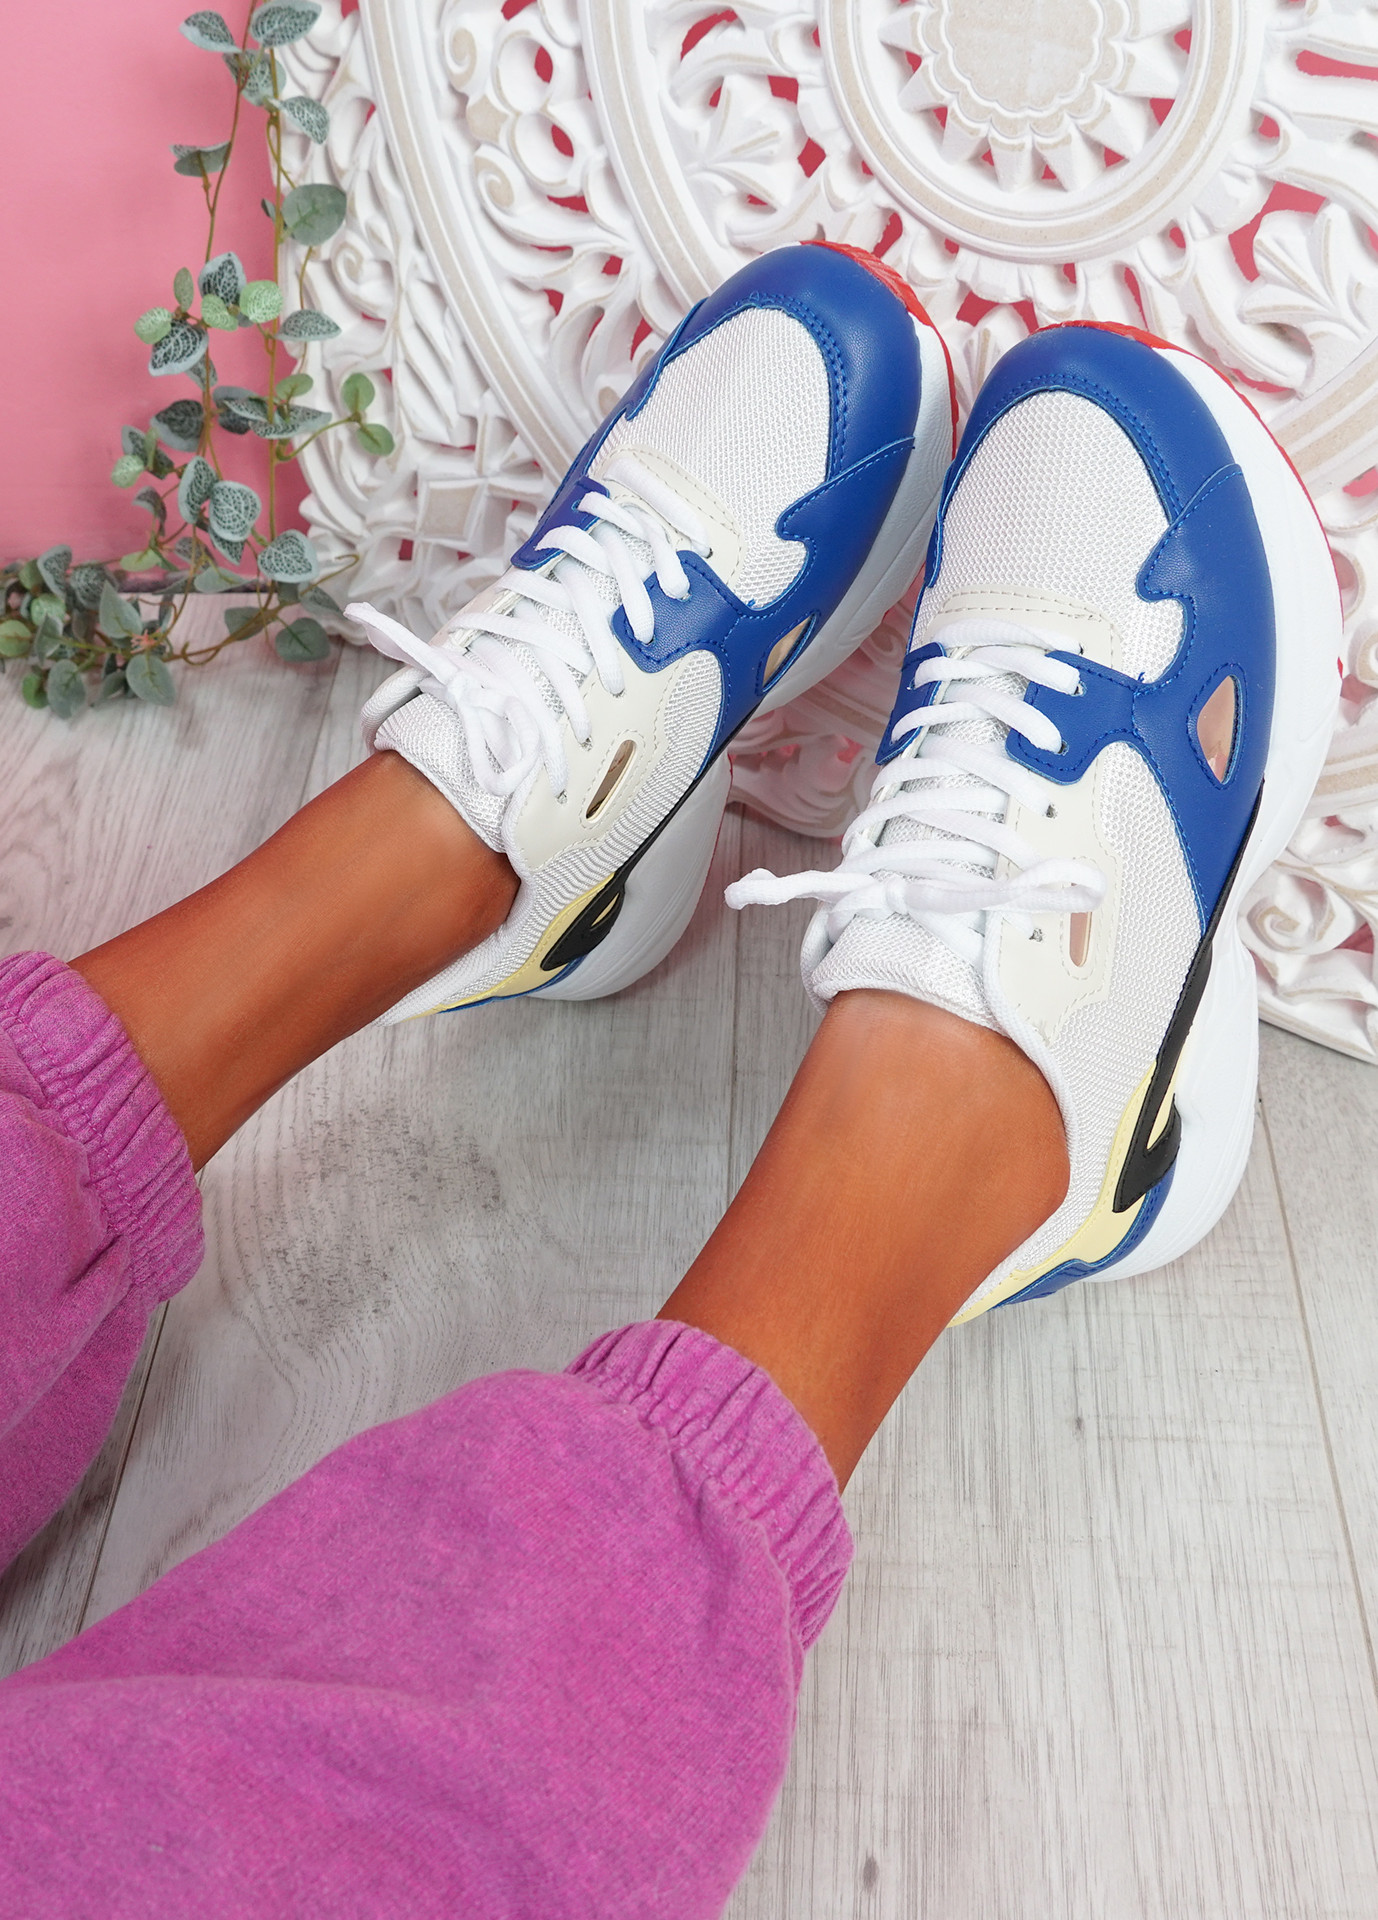 Yusa Blue Chunky Sneakers